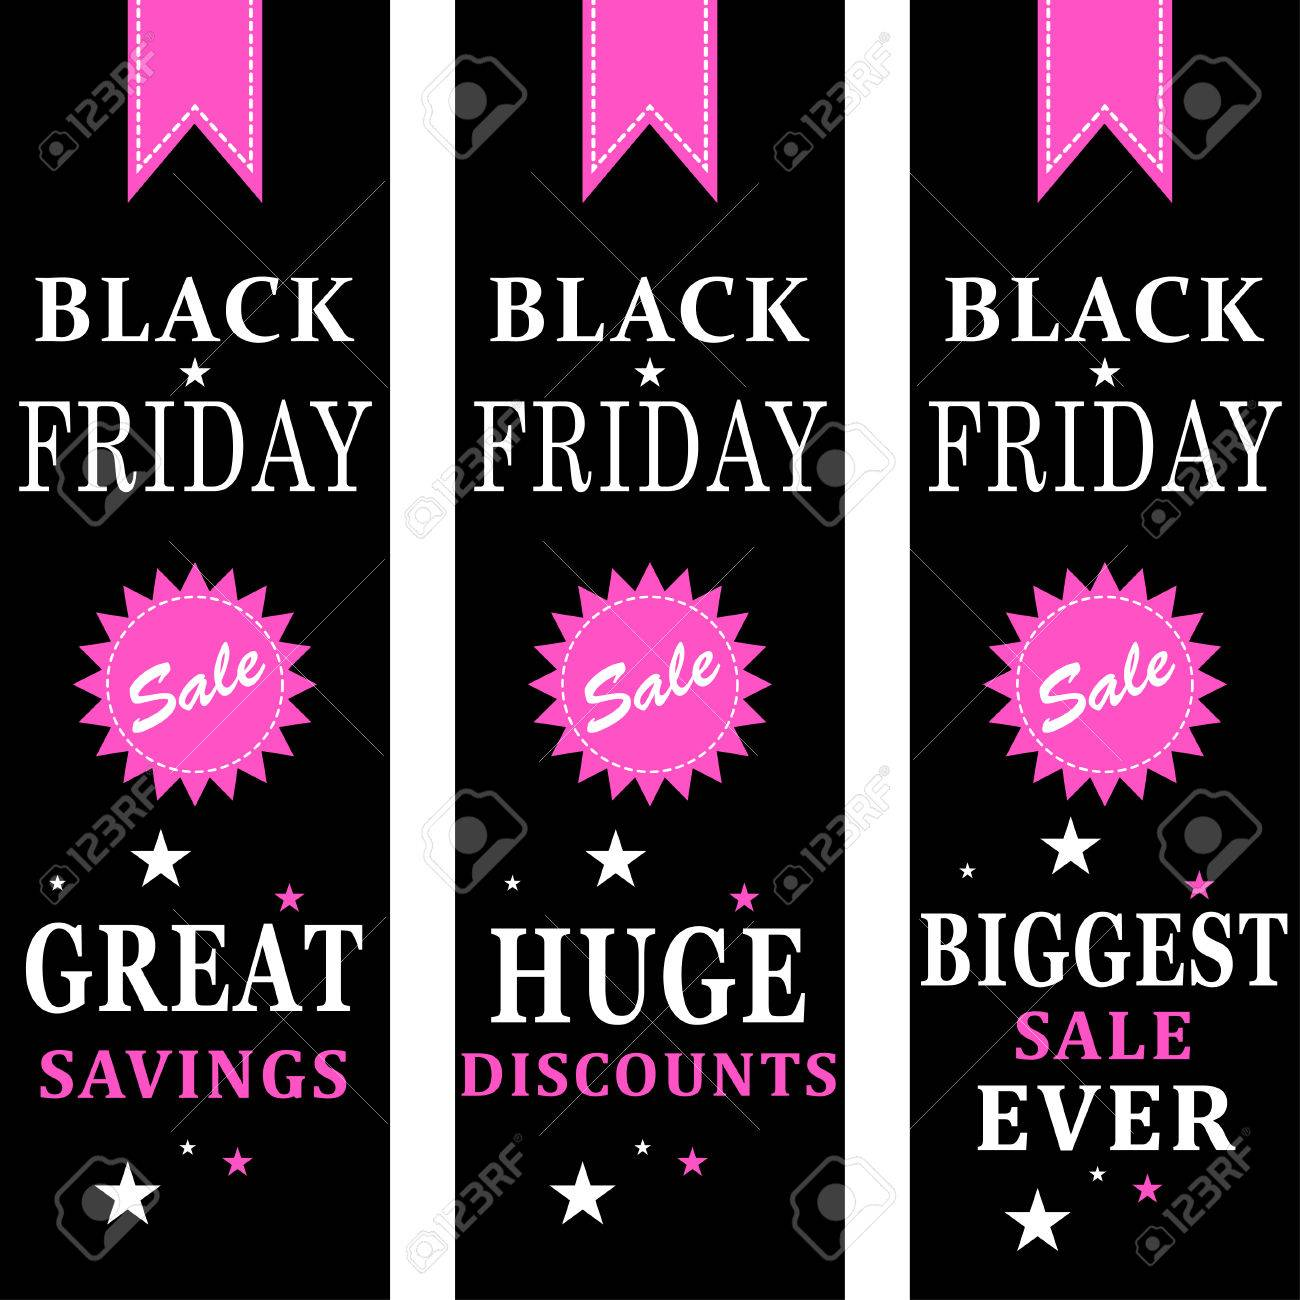 Black Friday Sales Banners Black Friday Sale Banners